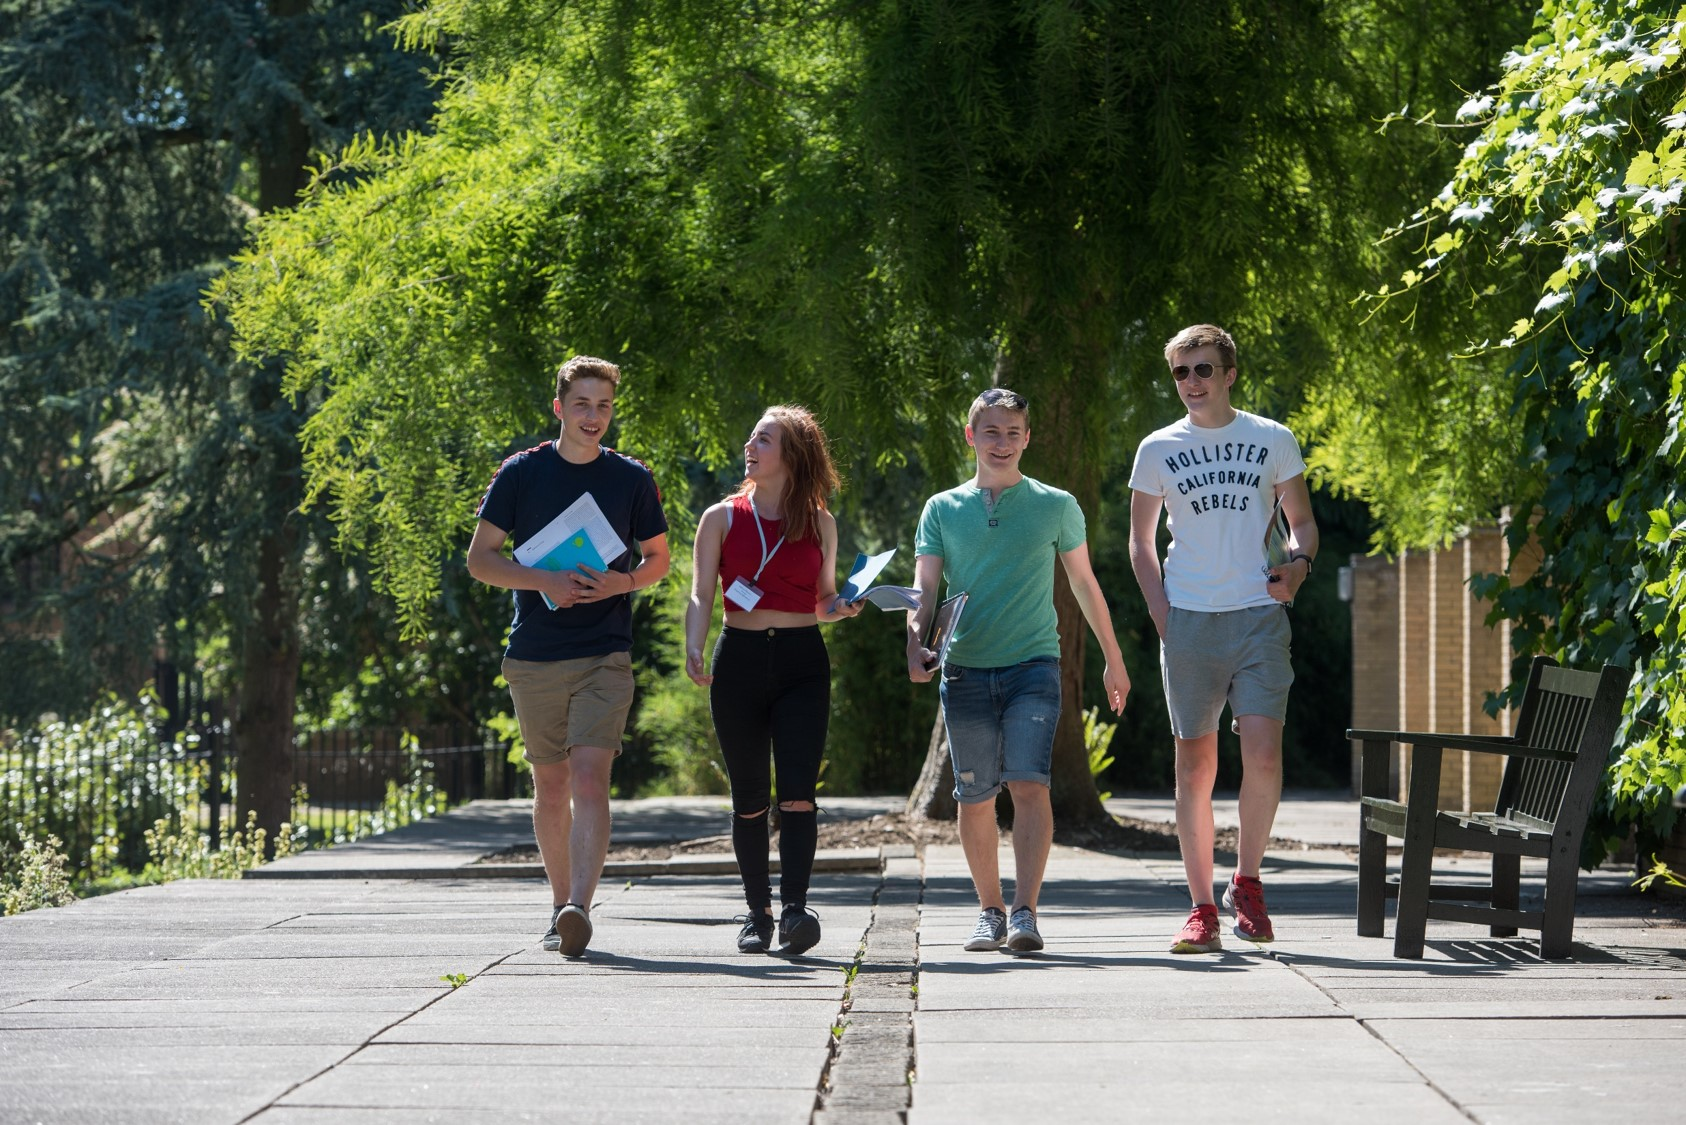 Students. Image by John Cairns Photography